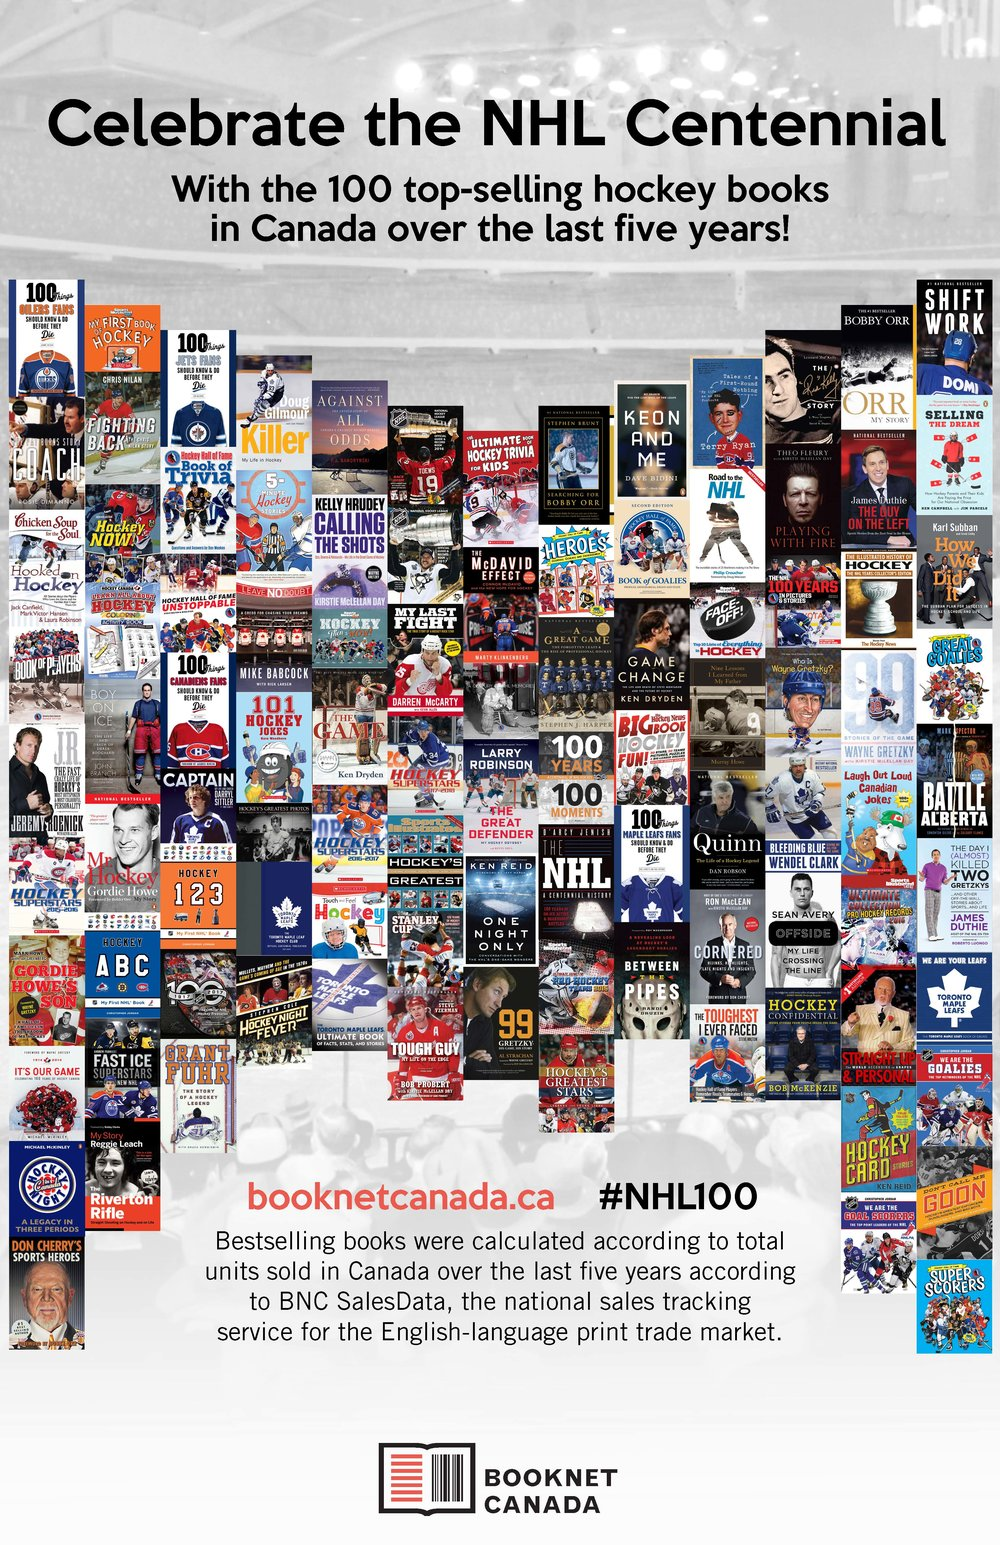 Poster of the top 100 bestselling hockey books of the last five years.